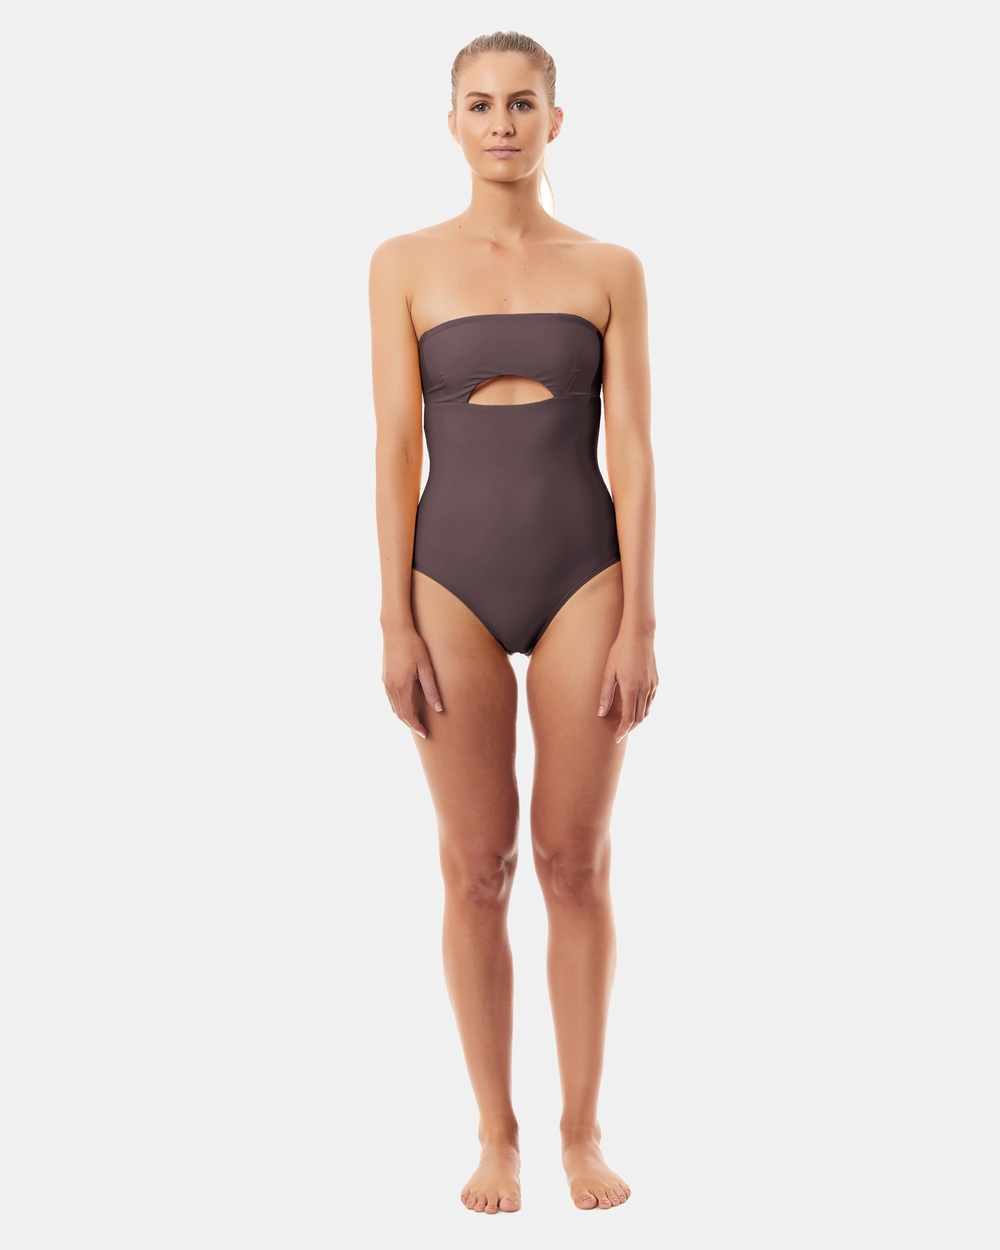 Seapia Puerto One Piece One-Piece / Swimsuit Neutral Puerto One Piece